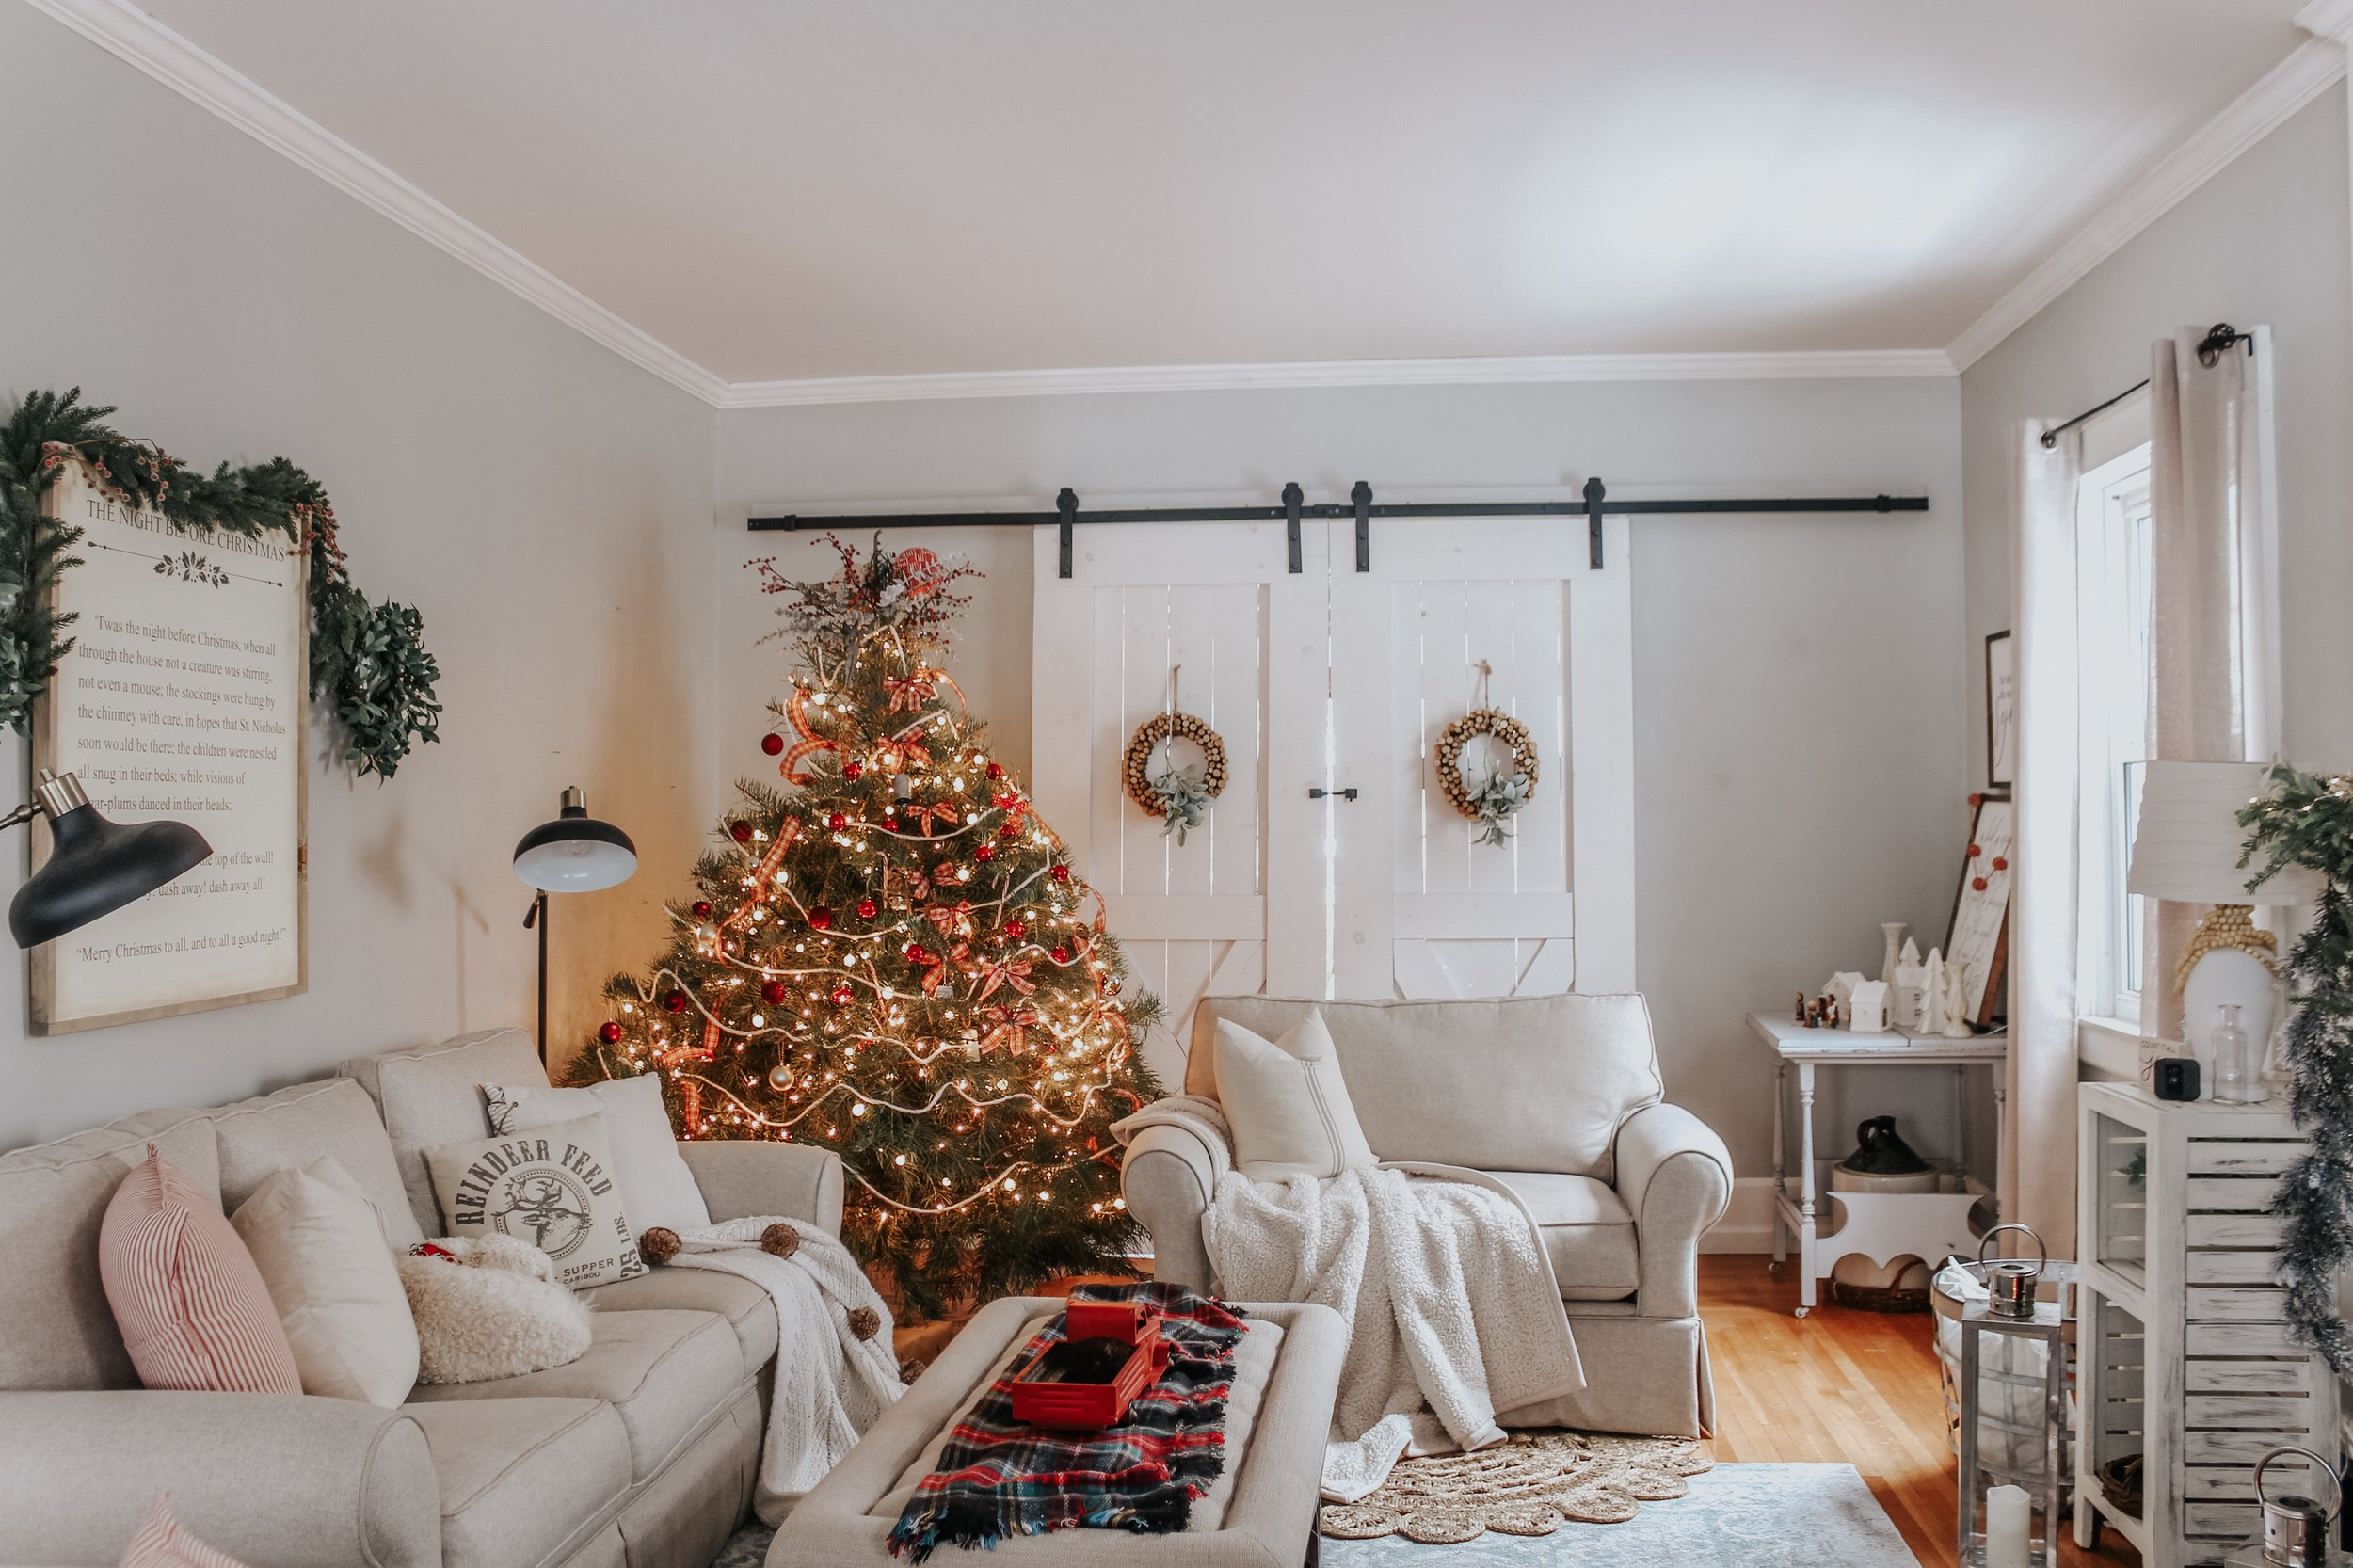 Christmas decor in the living room